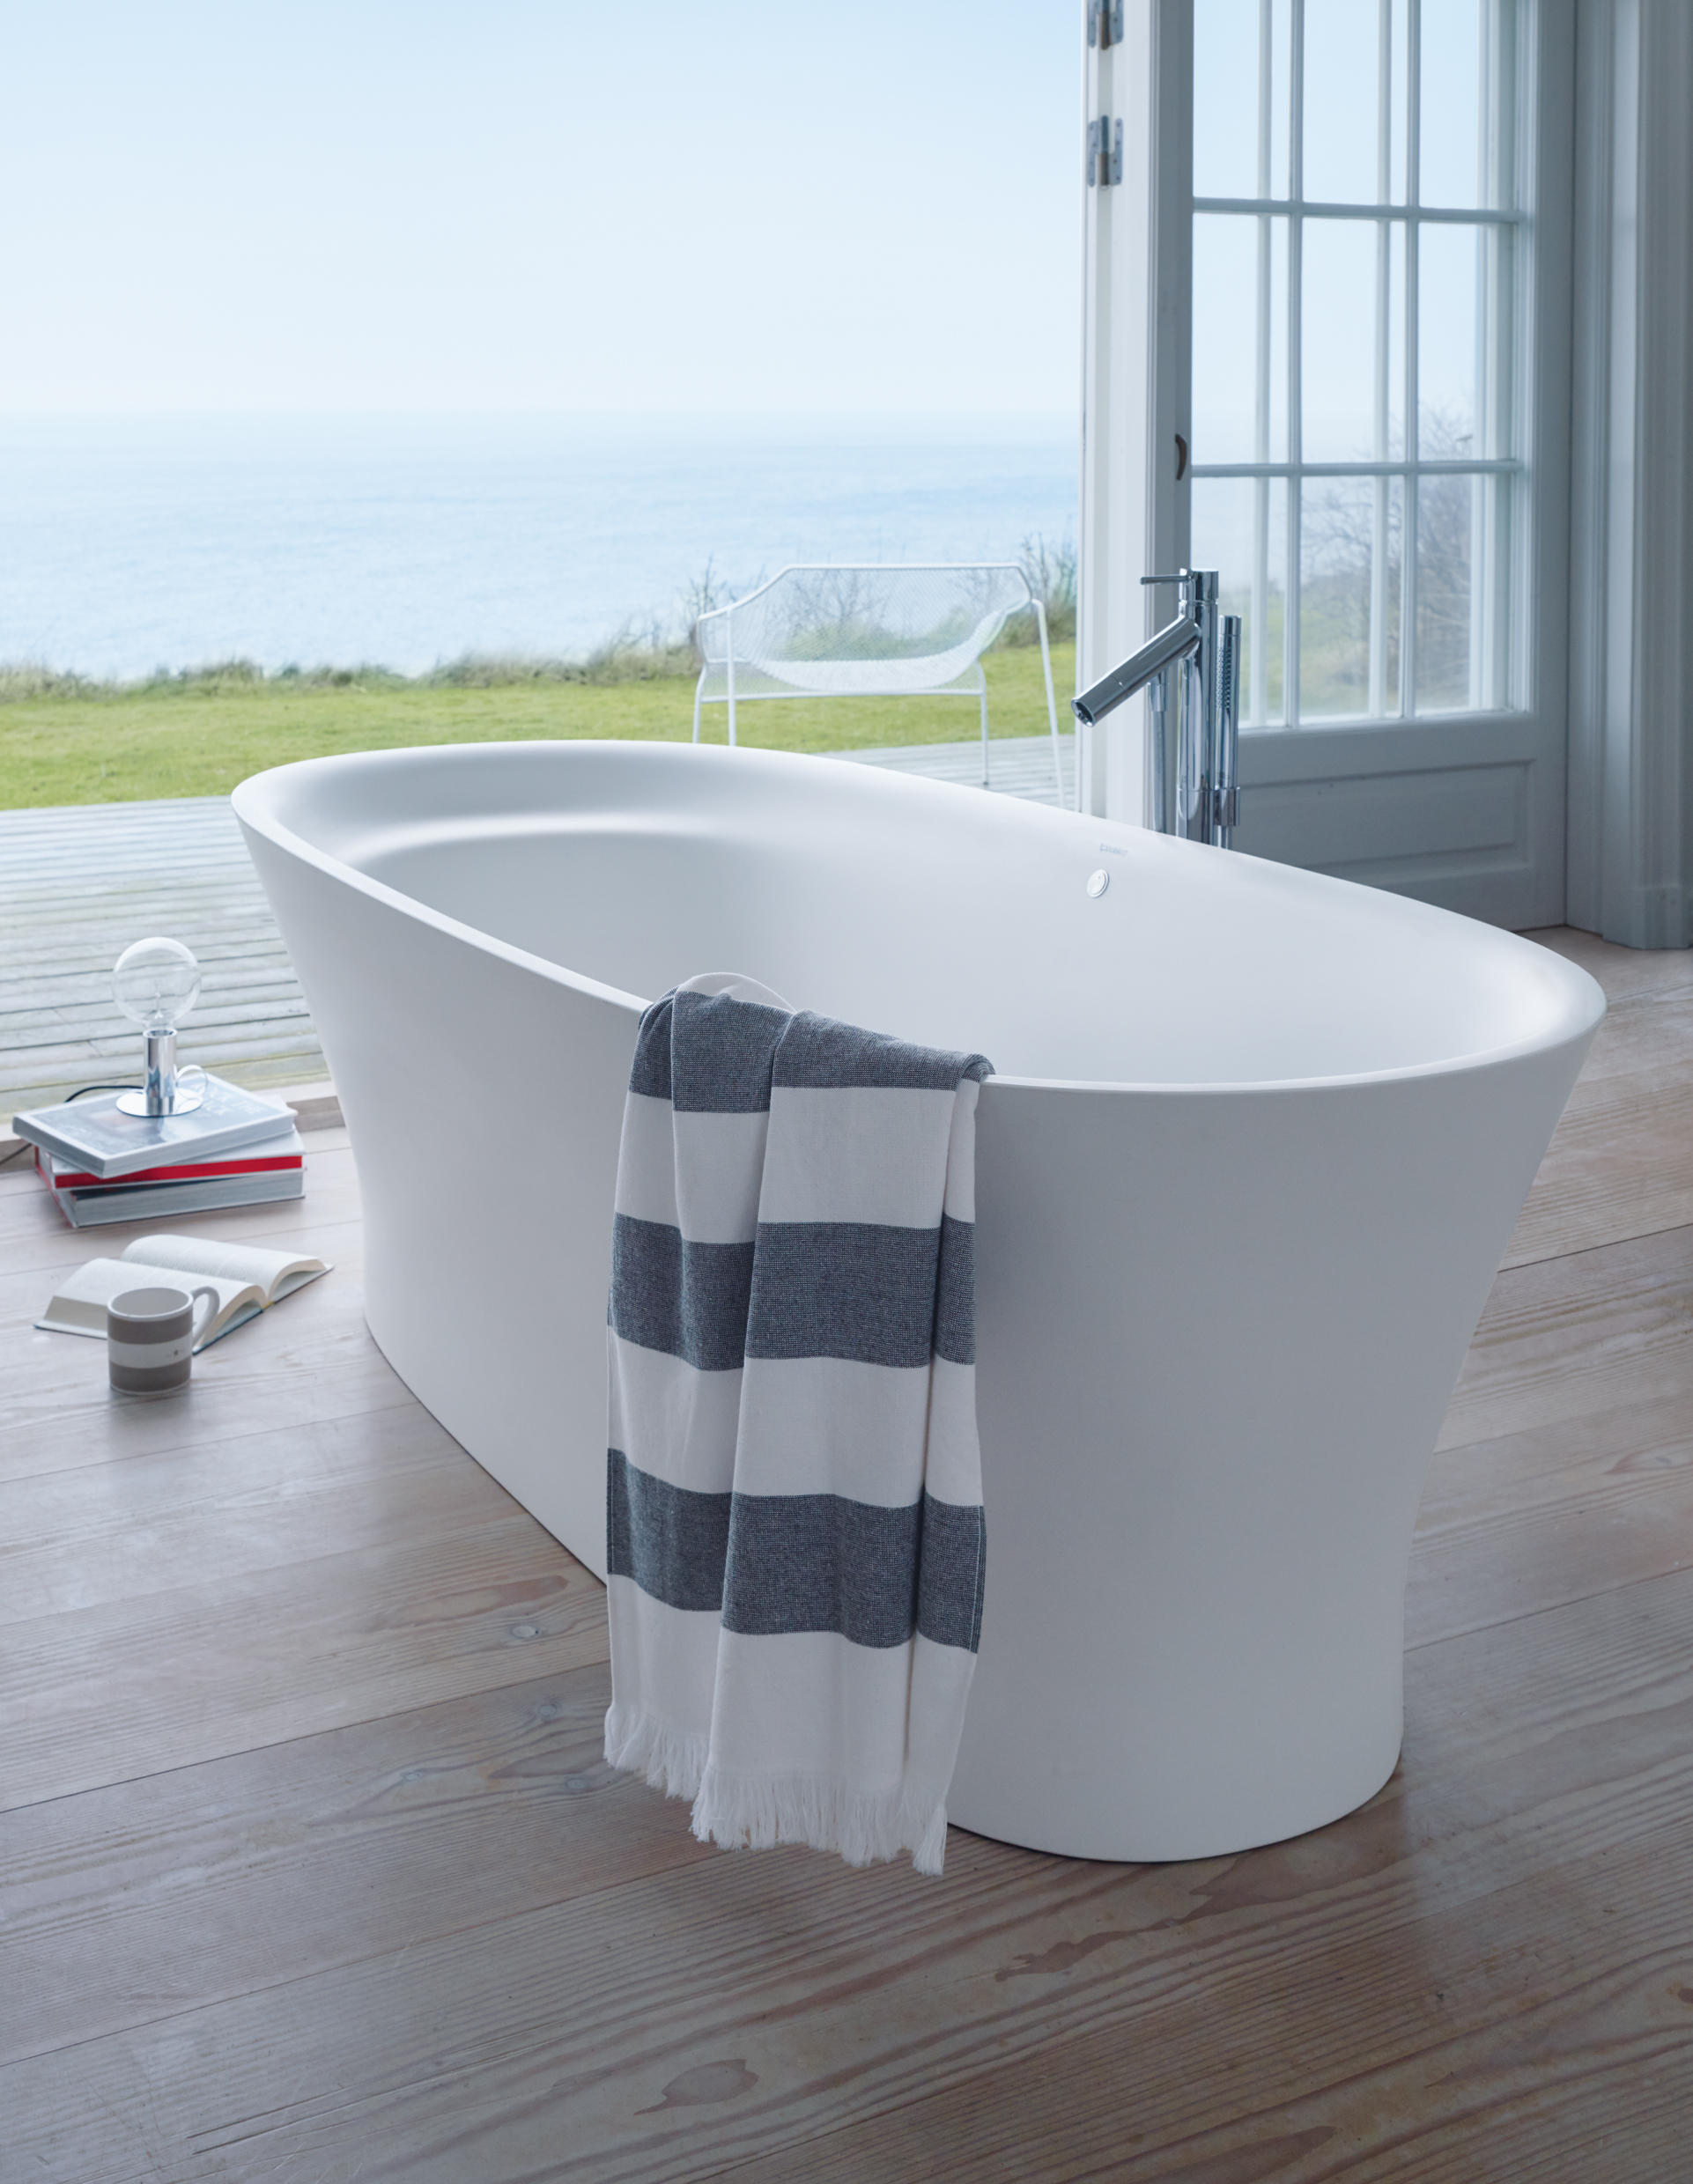 cape cod bathtub free standing baths from duravit architonic. Black Bedroom Furniture Sets. Home Design Ideas